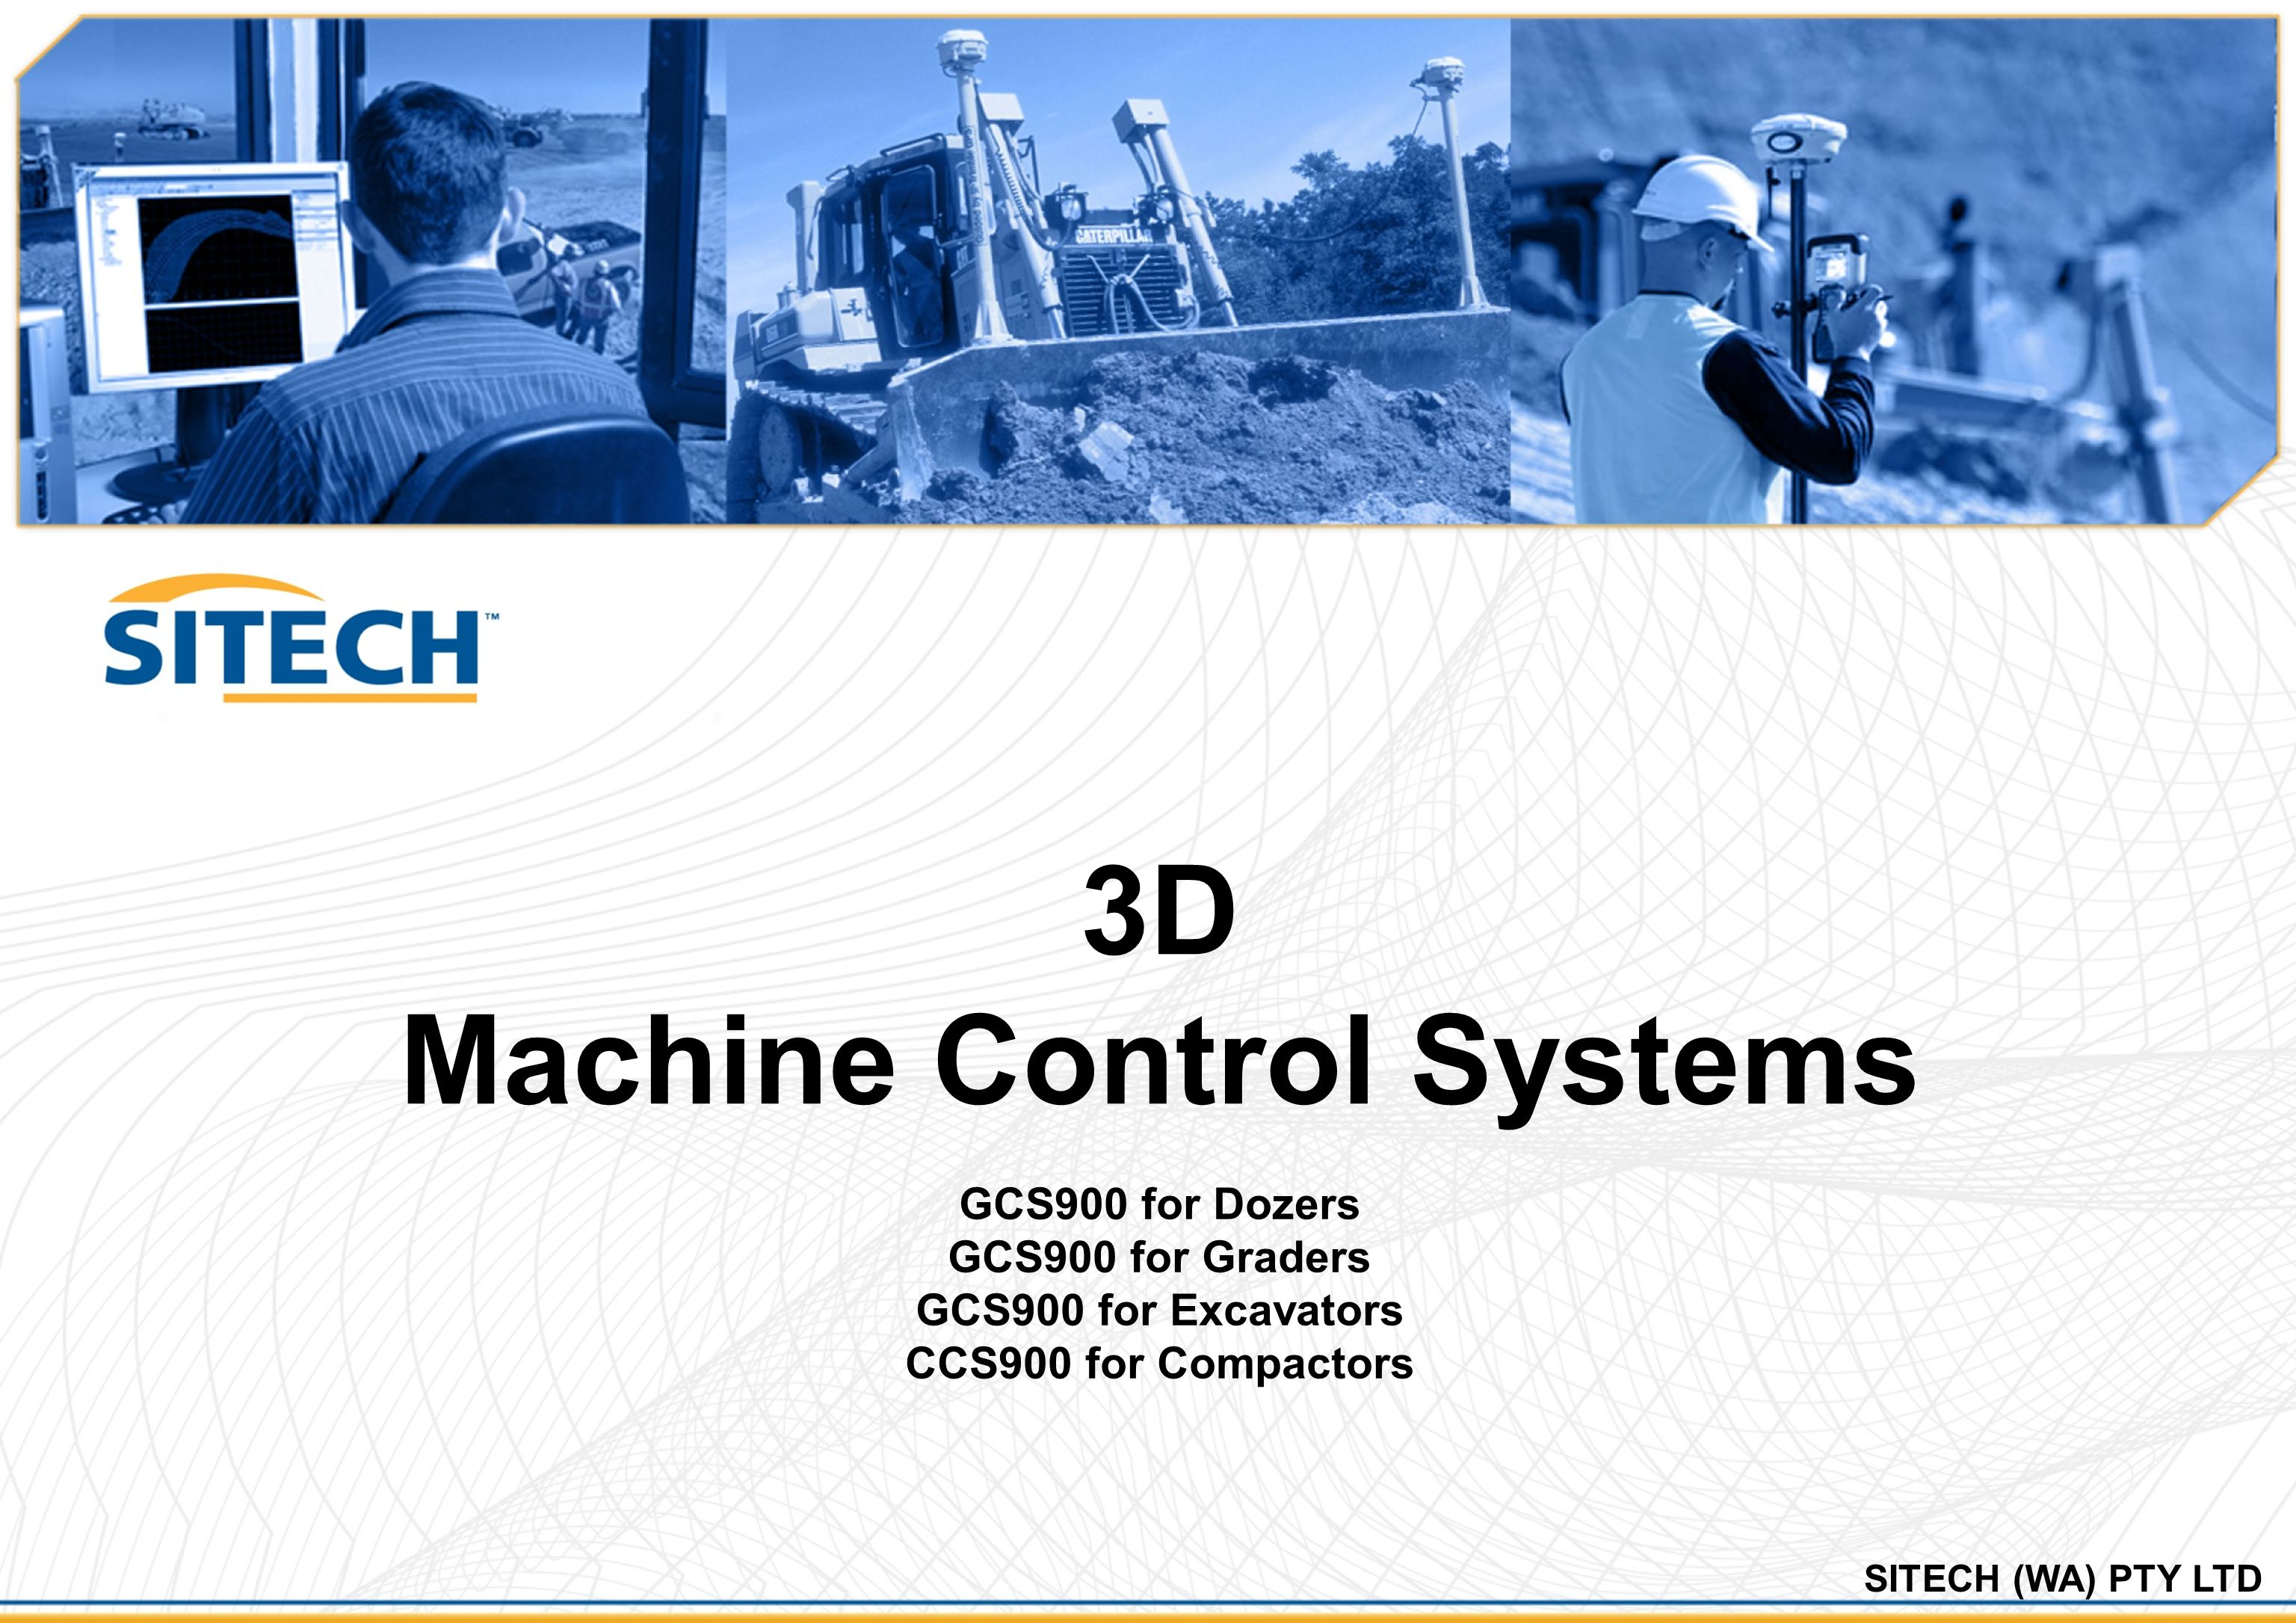 3D Machine Control Systems